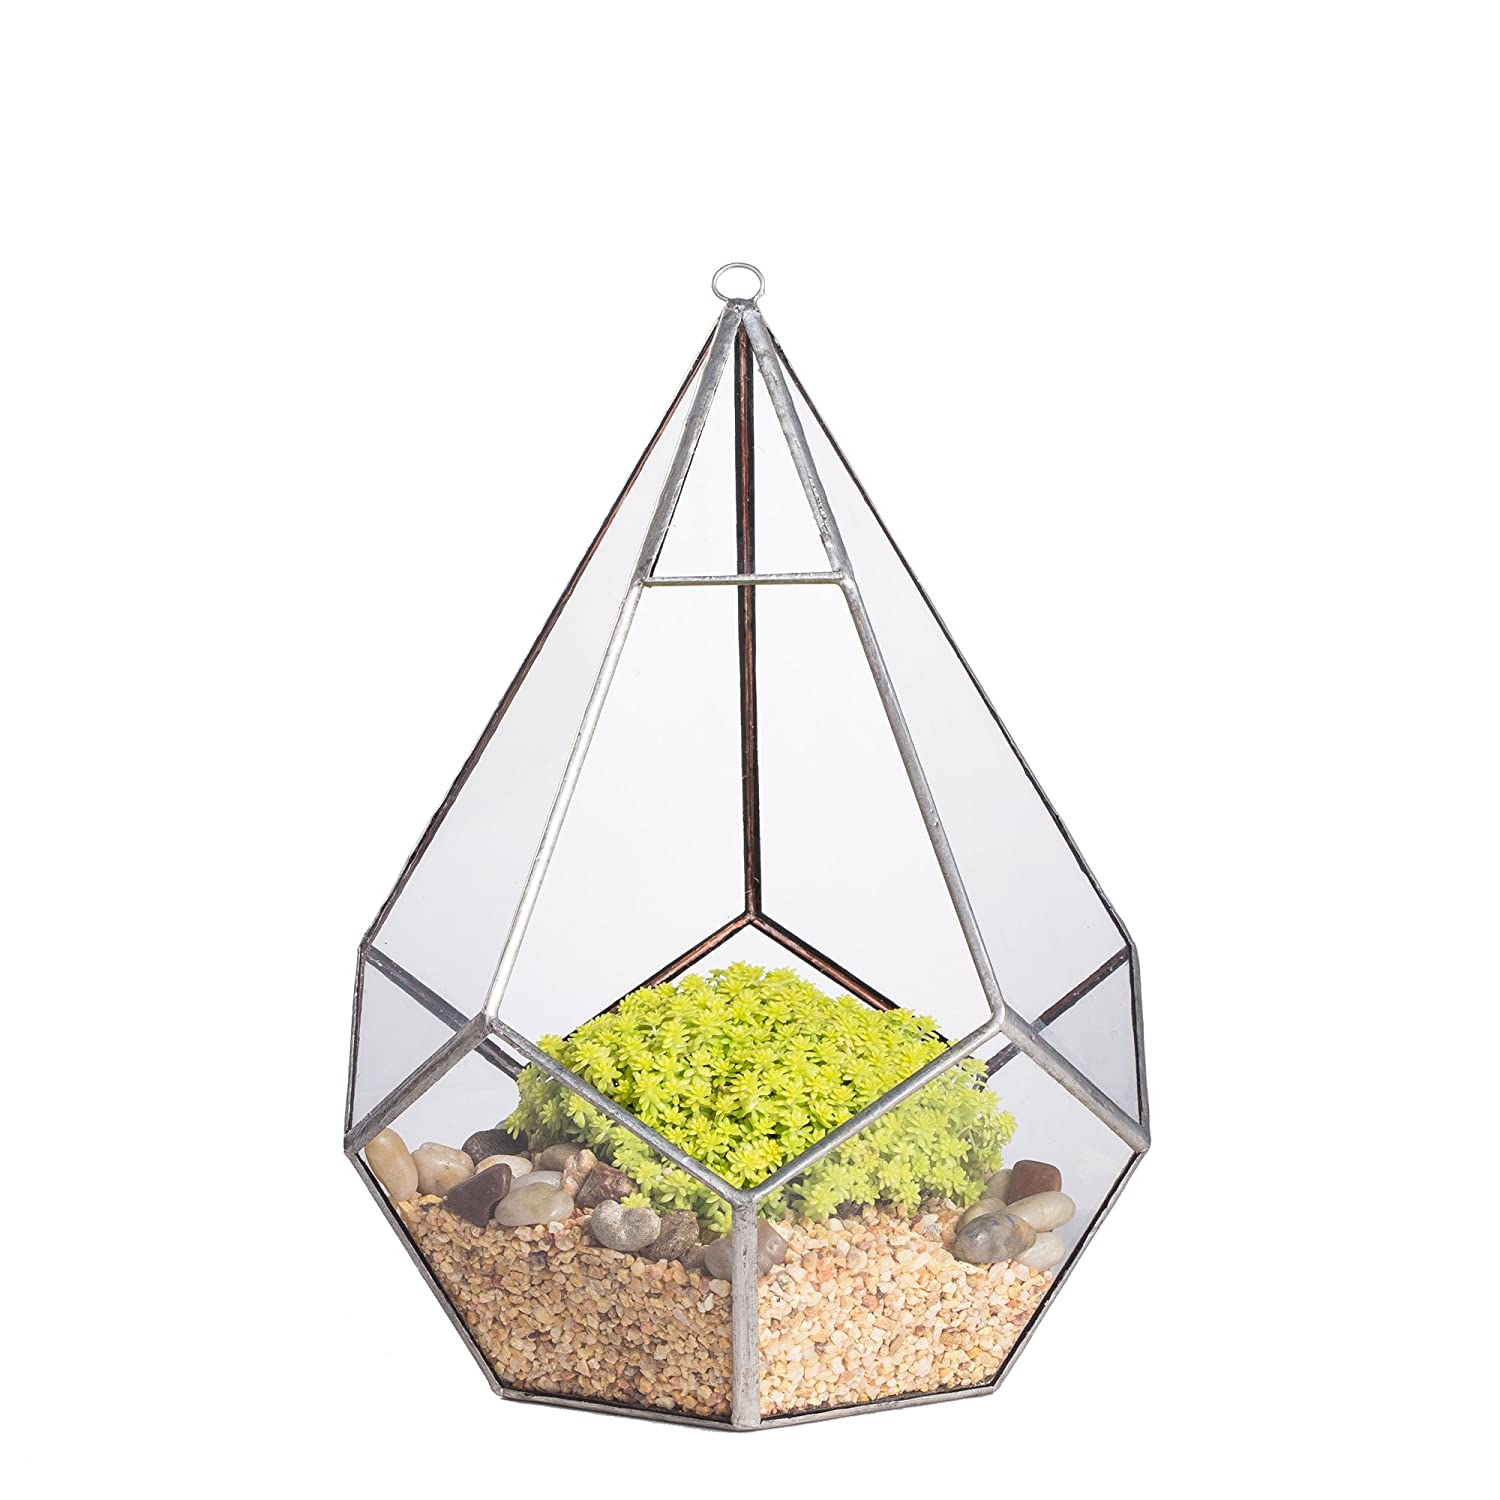 1 Face Opening Modern Hanging Geometric Polyhedron Diamond Teardrops Shape Clear Glass Plant Terrarium Planter (5 Faces Triangle with 6 Faces Pentagon) 6.8 x 6.8 x 8.6inches (9inches with loop) Sliver NCYP 20160220005_MY